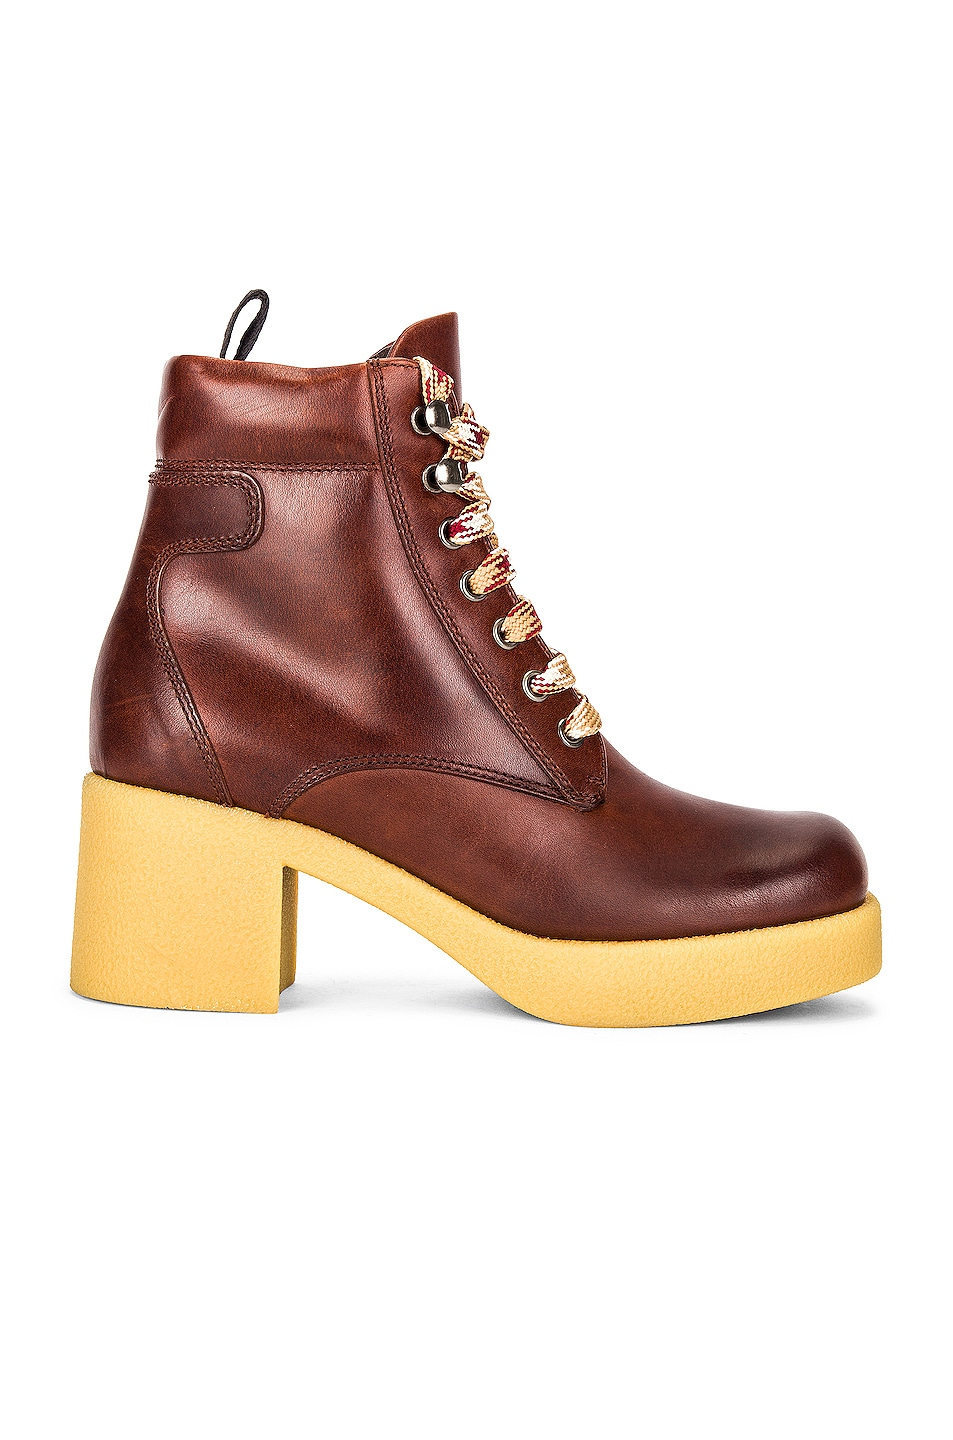 Image 1 of Miu Miu Platform Lace Up Ankle Boots in Cognac